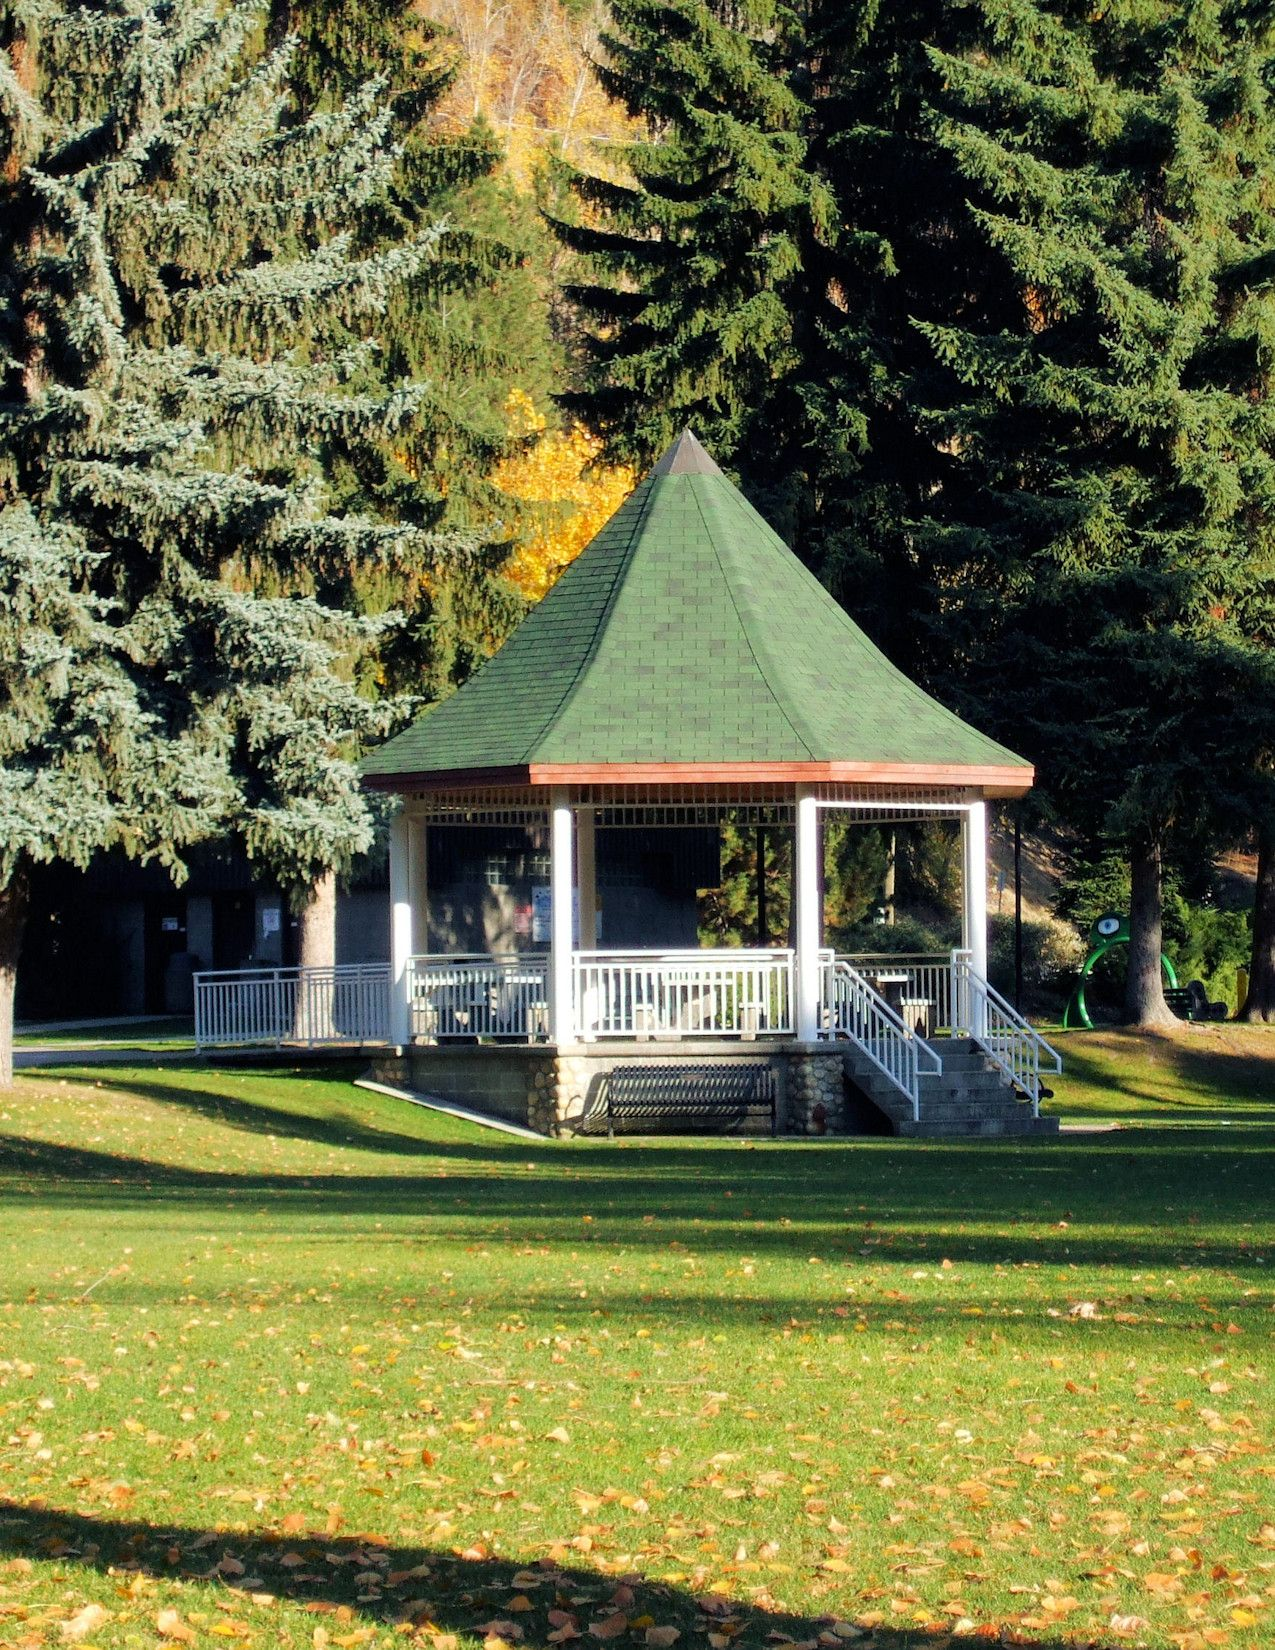 Gyro Park Gazebo 1 The In A Town Nestles Between Evergreens On